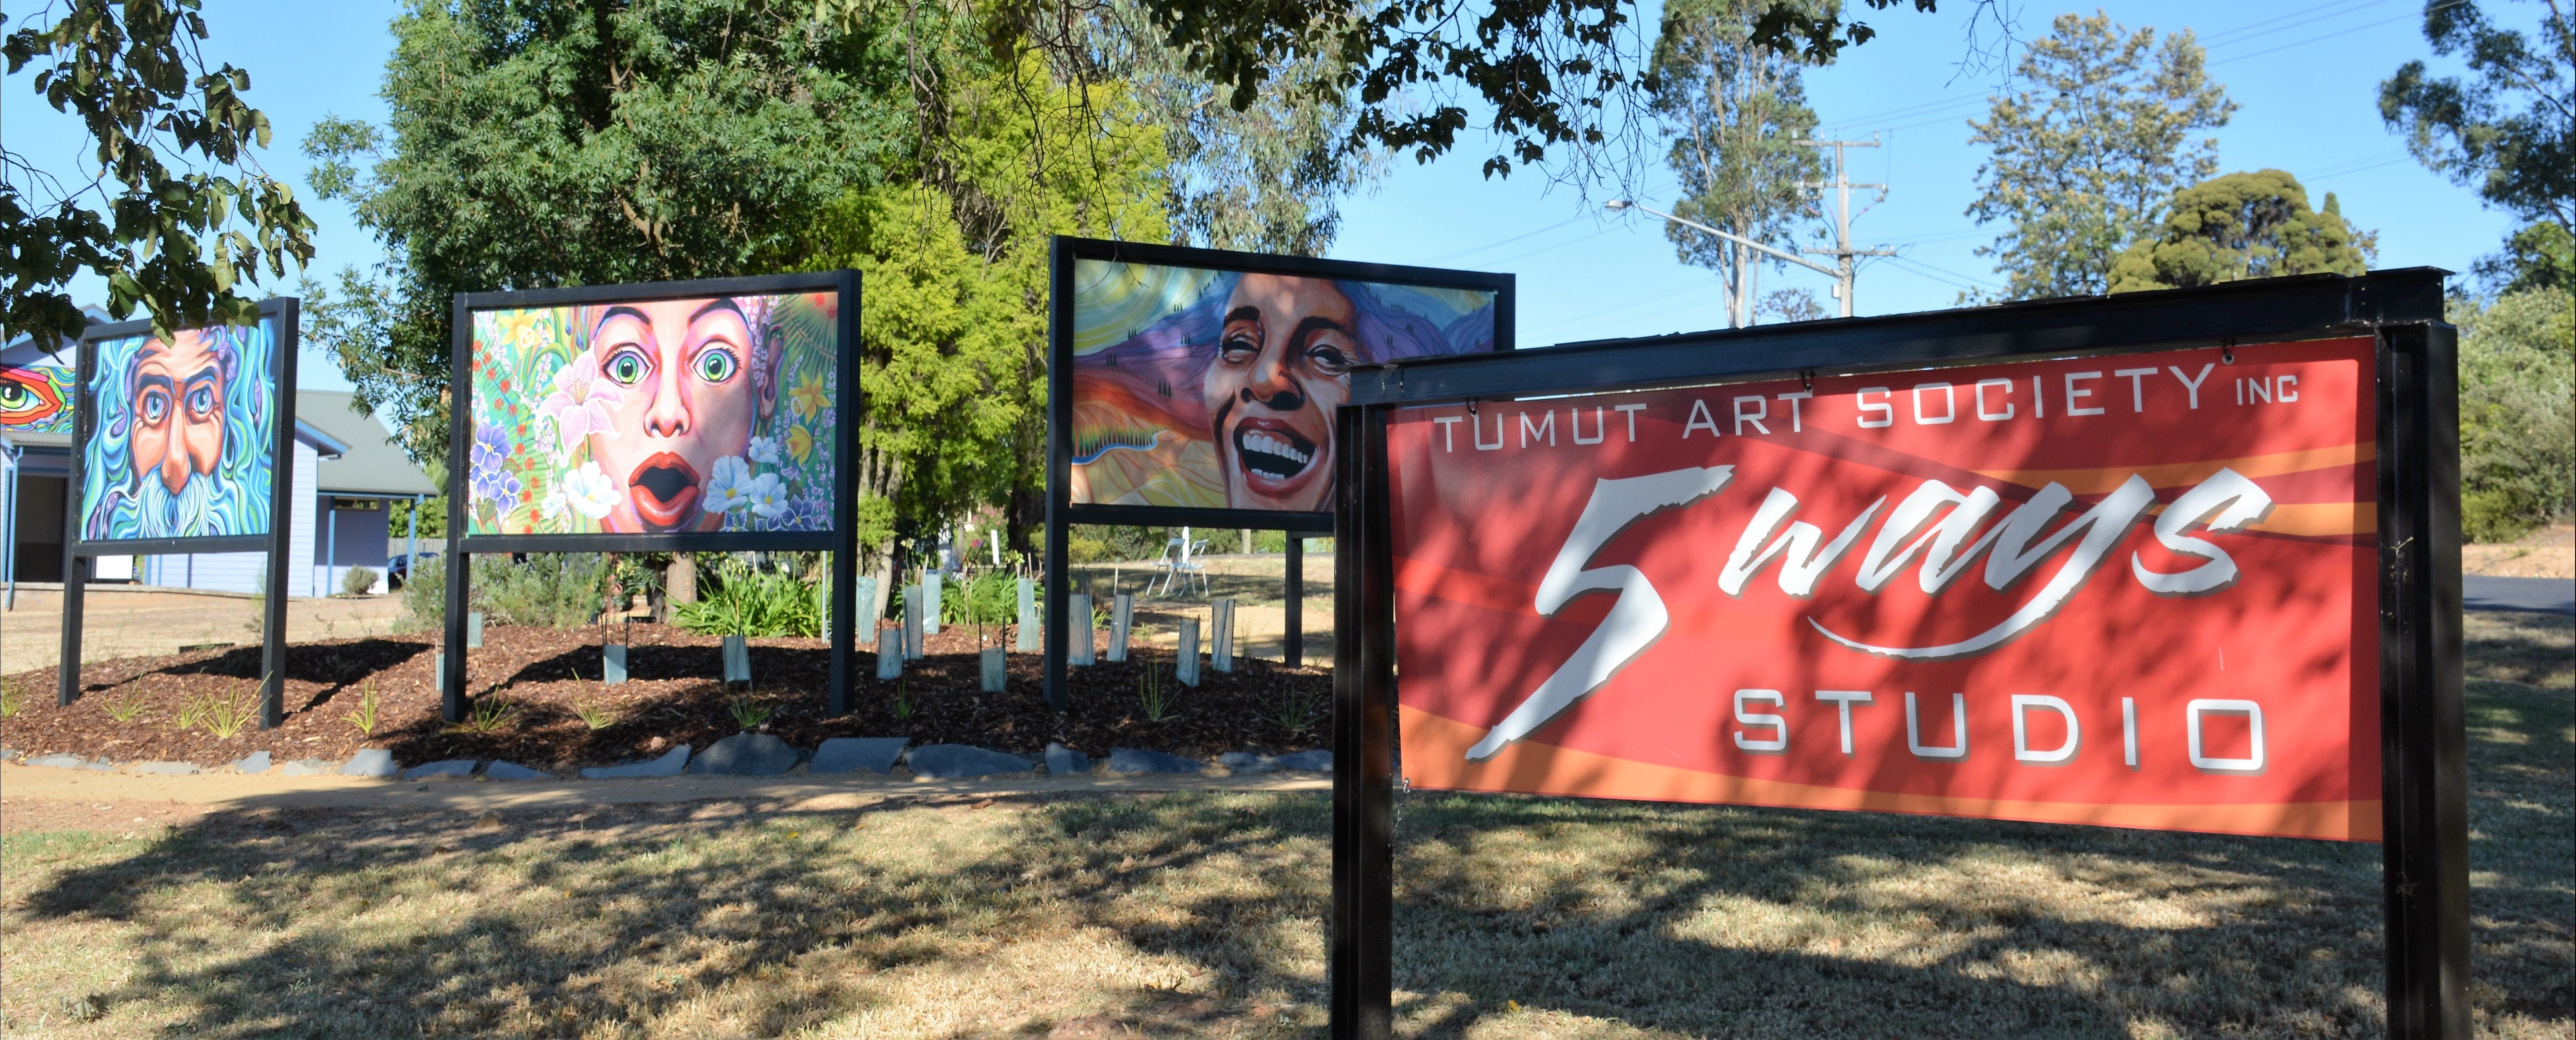 Tumut Art Society 5Ways Gallery - Attractions Sydney